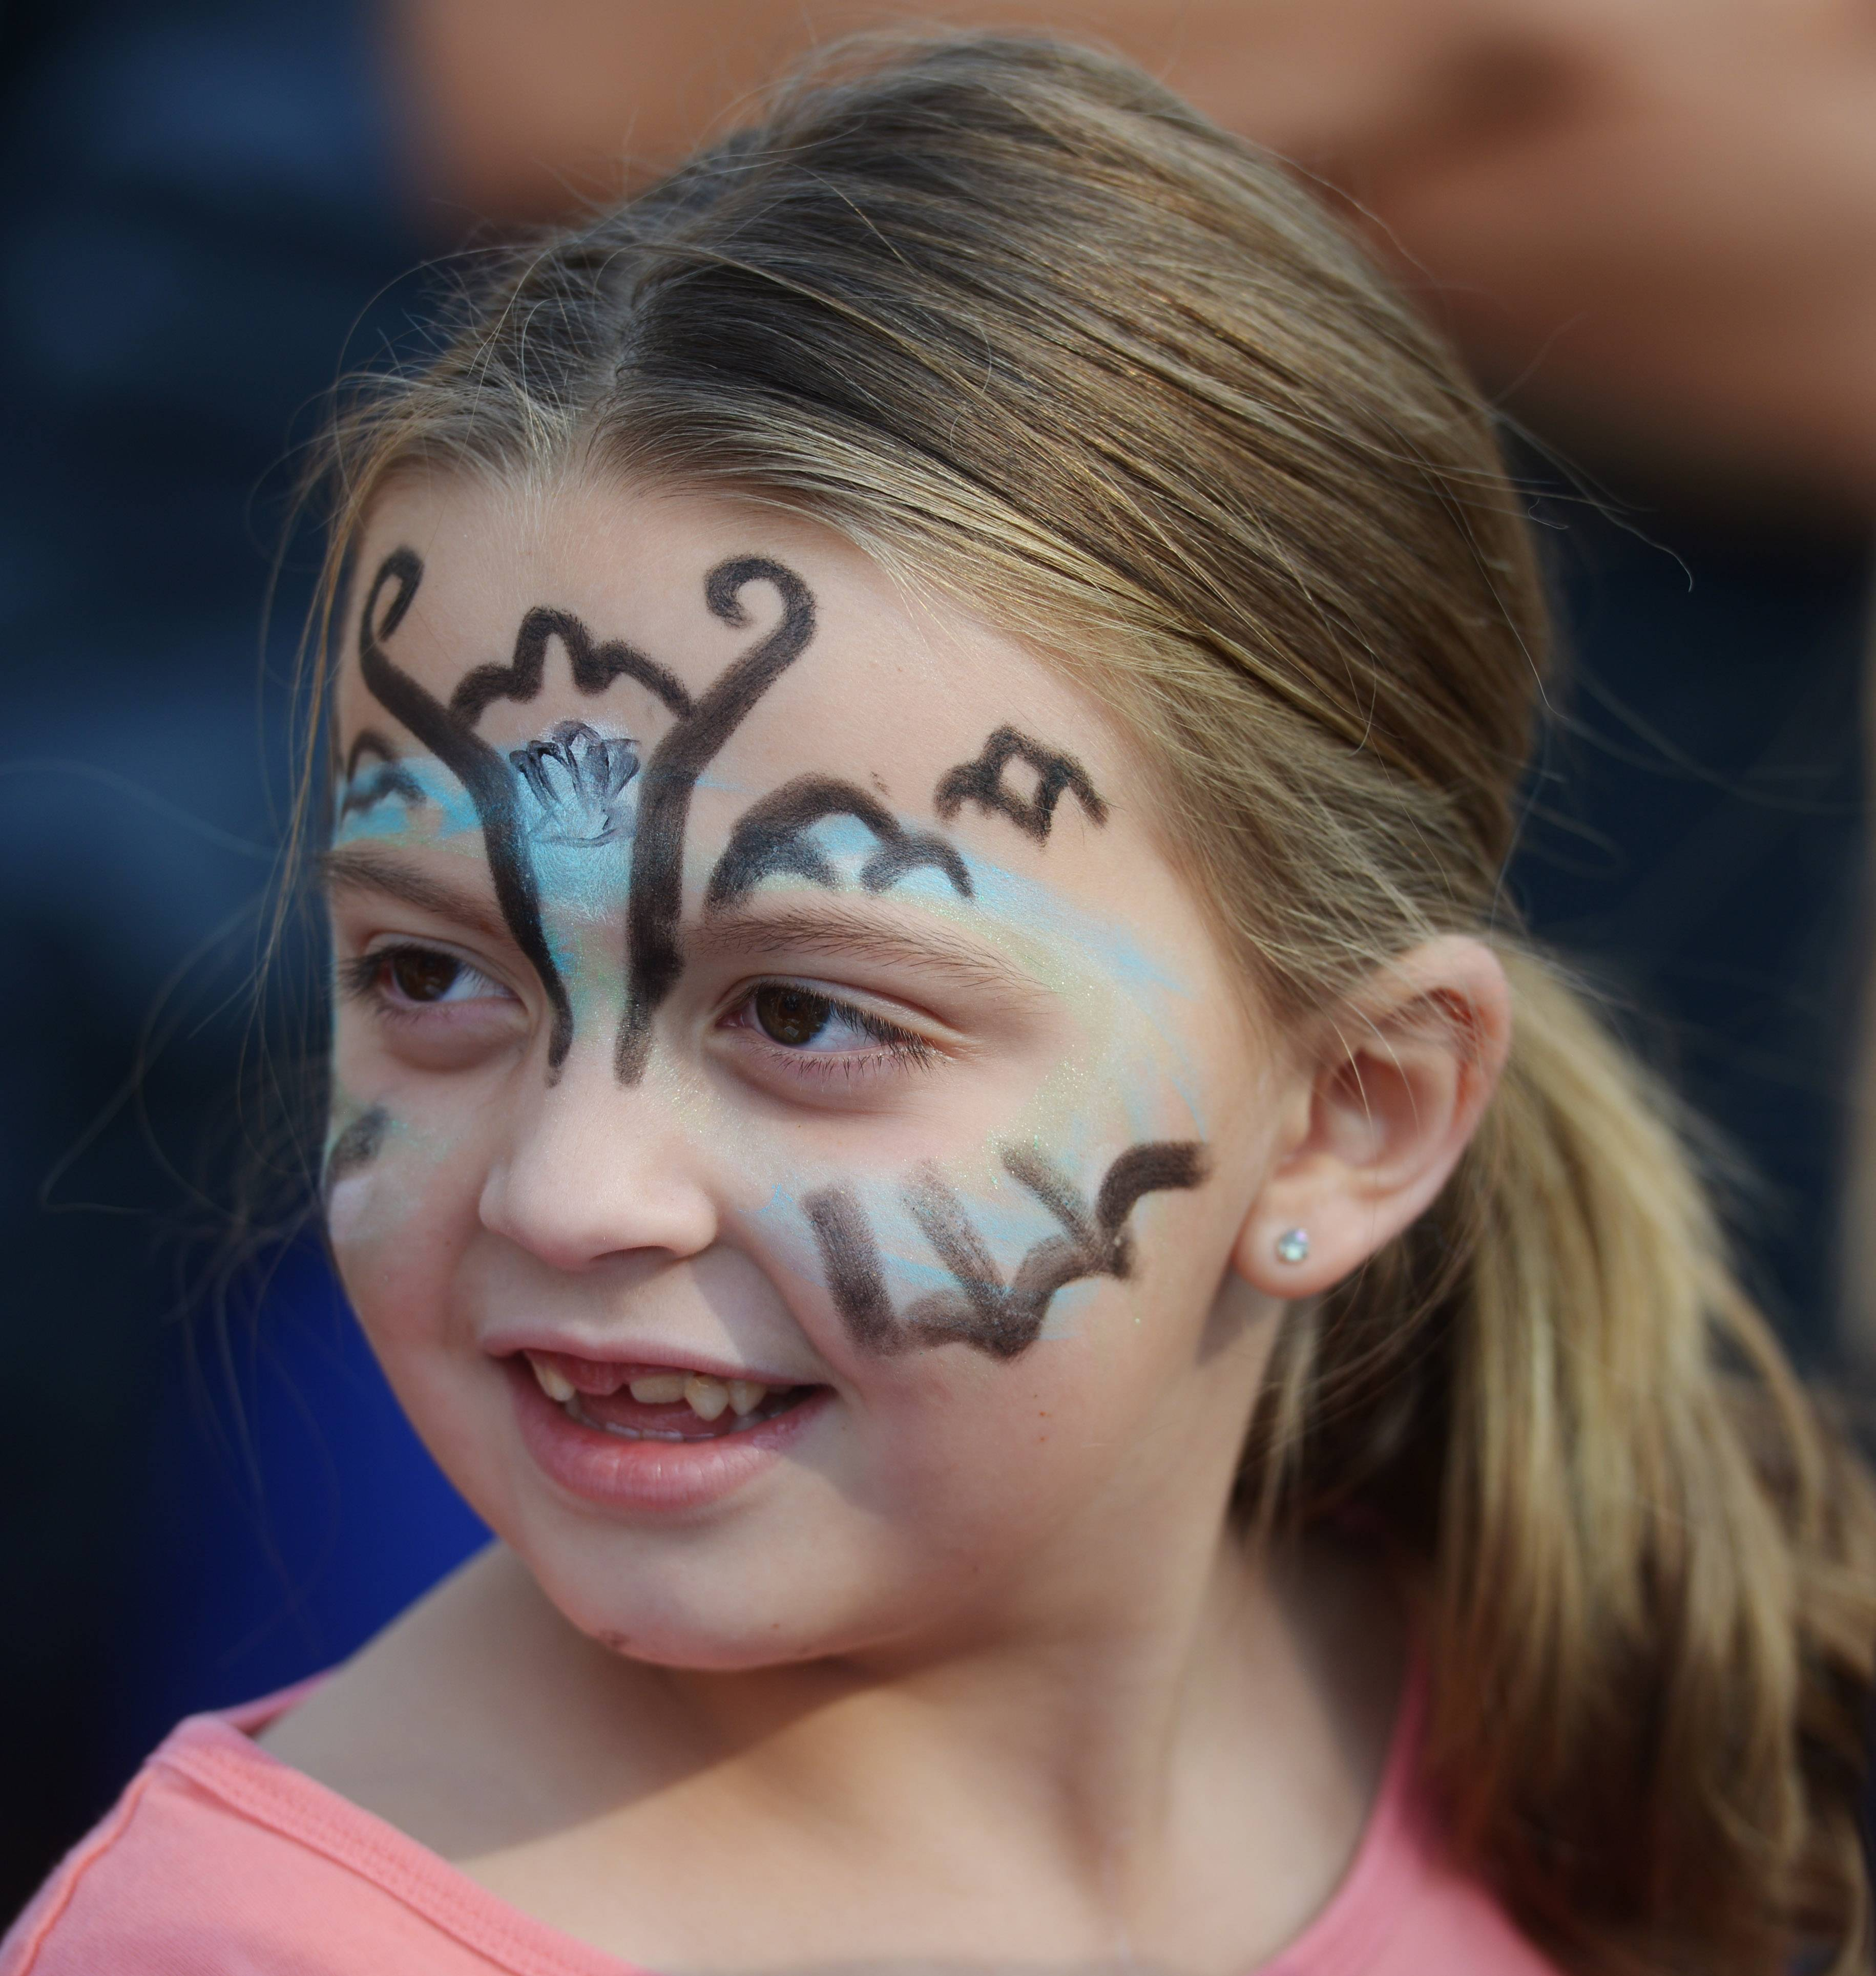 Lucy Cordell, 7, of Wauconda gets her face painted Saturday during the 18th annual Wauconda Street Dance. The event included two stages of entertainment, food, music and more.